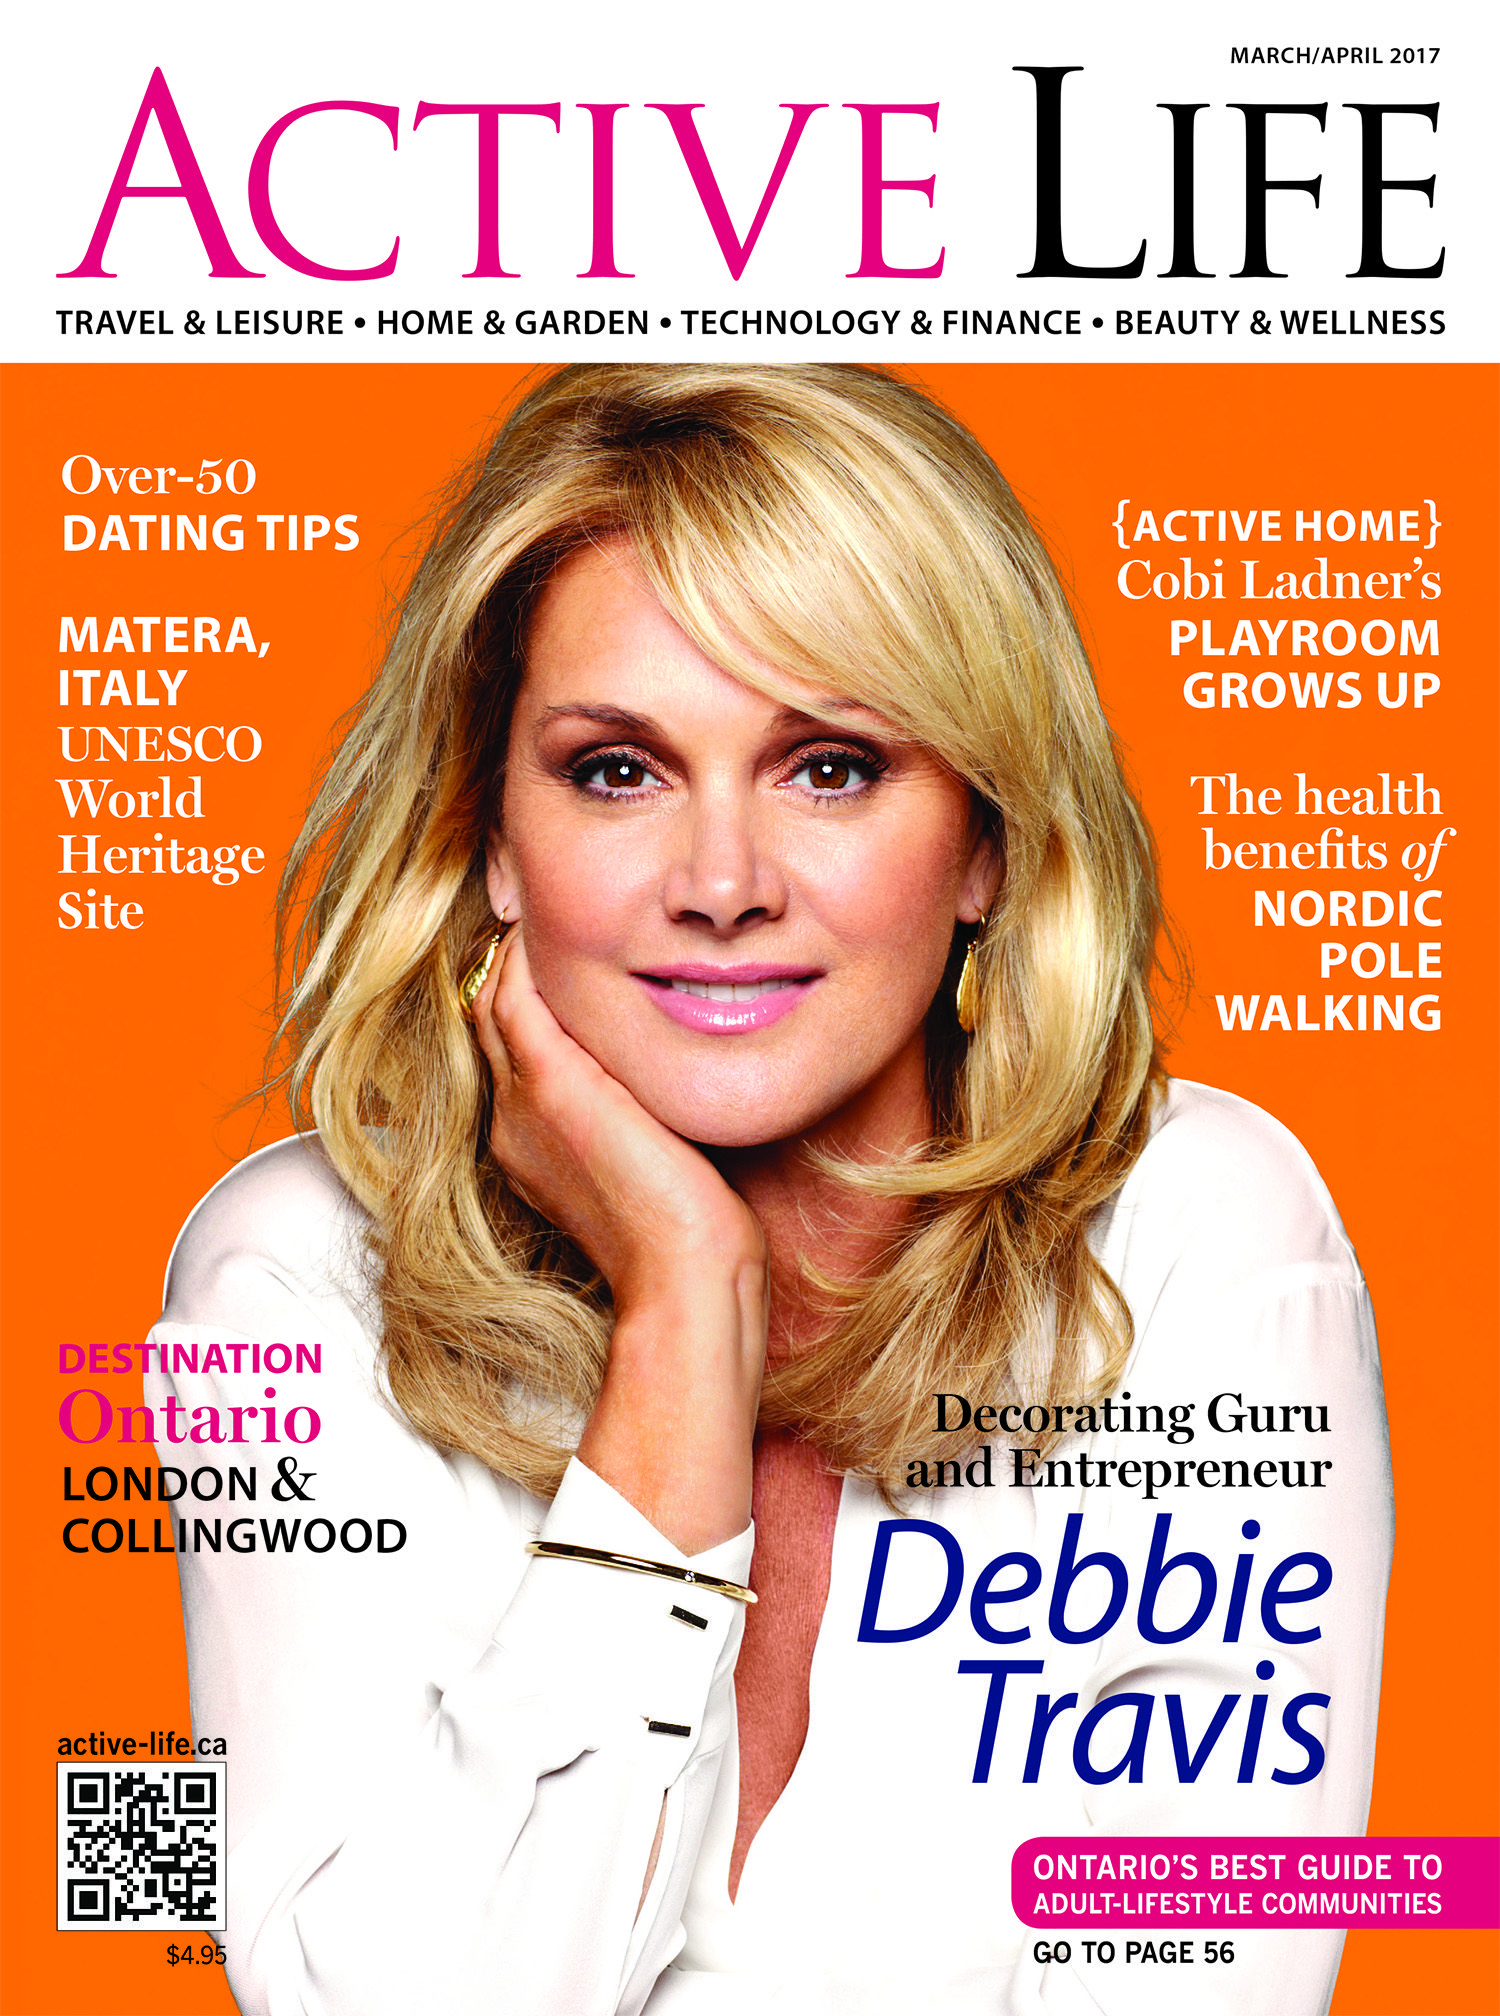 Lifestyle and dating magazine